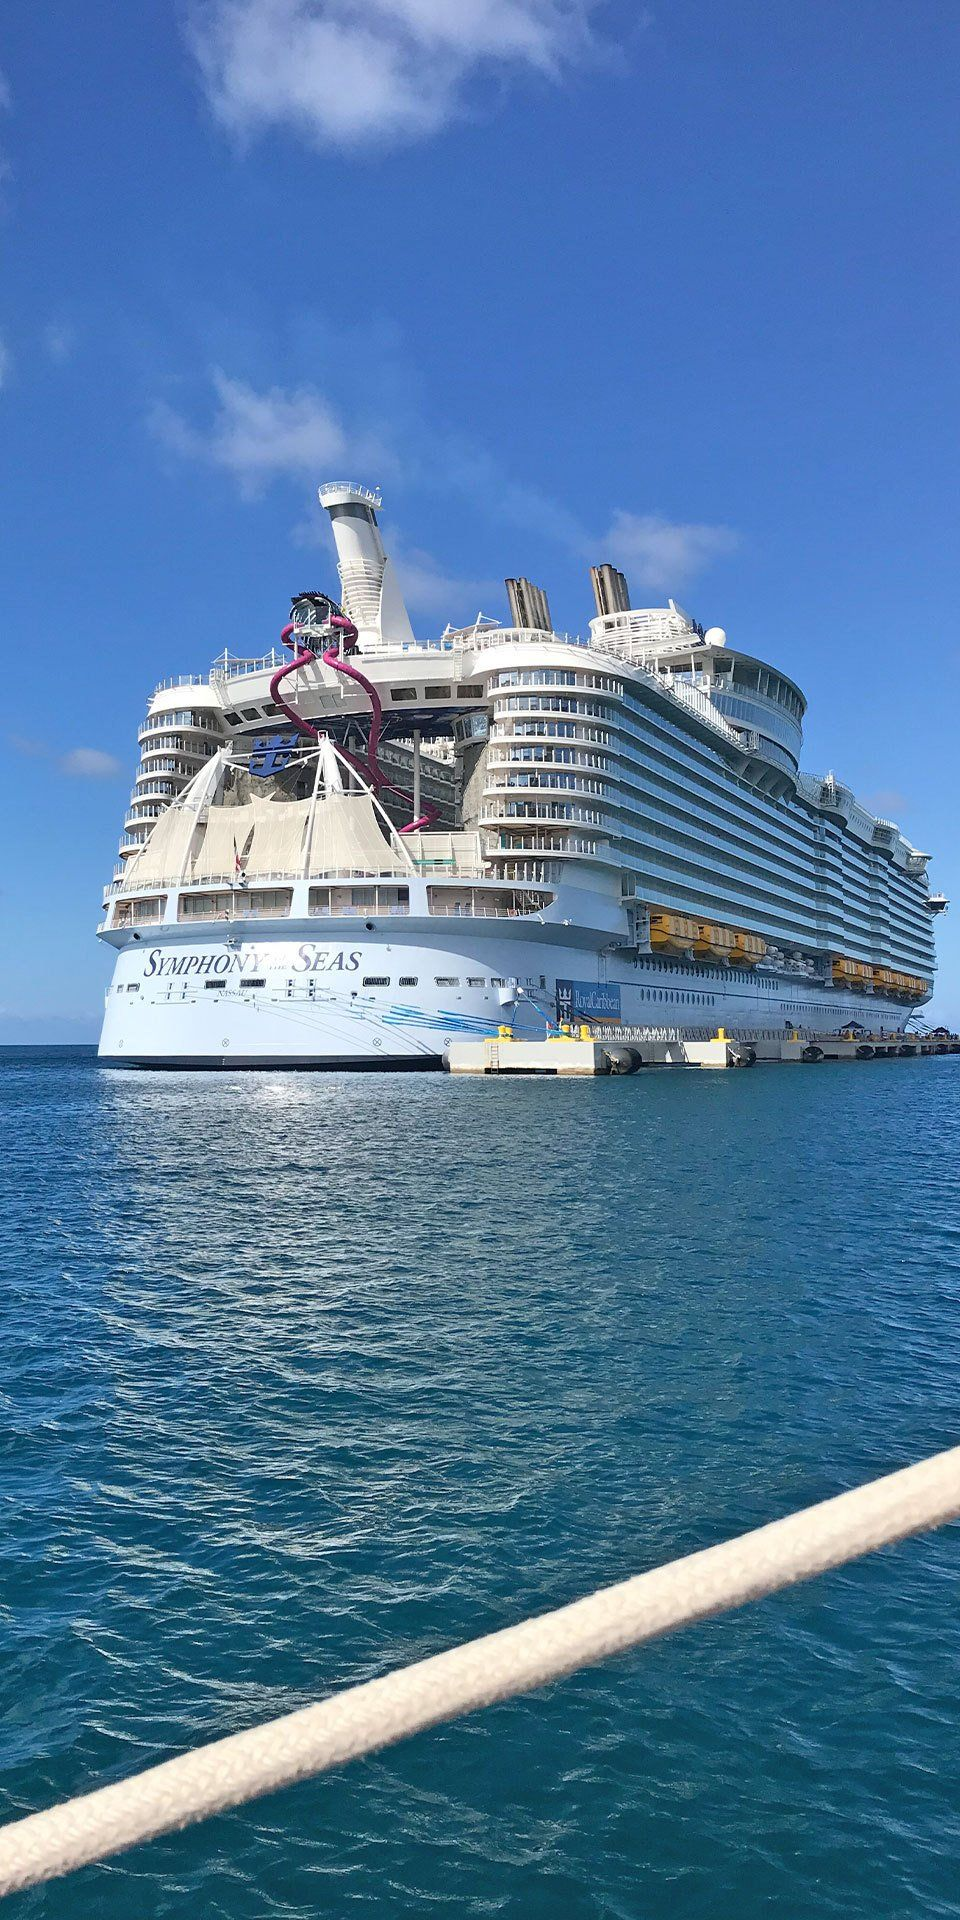 Symphony Of The Seas It S Hard To Say What S Better Where You Are Going Or How Royal Caribbean Cruise Ship Royal Caribbean Cruise Lines Cruise Ship Pictures